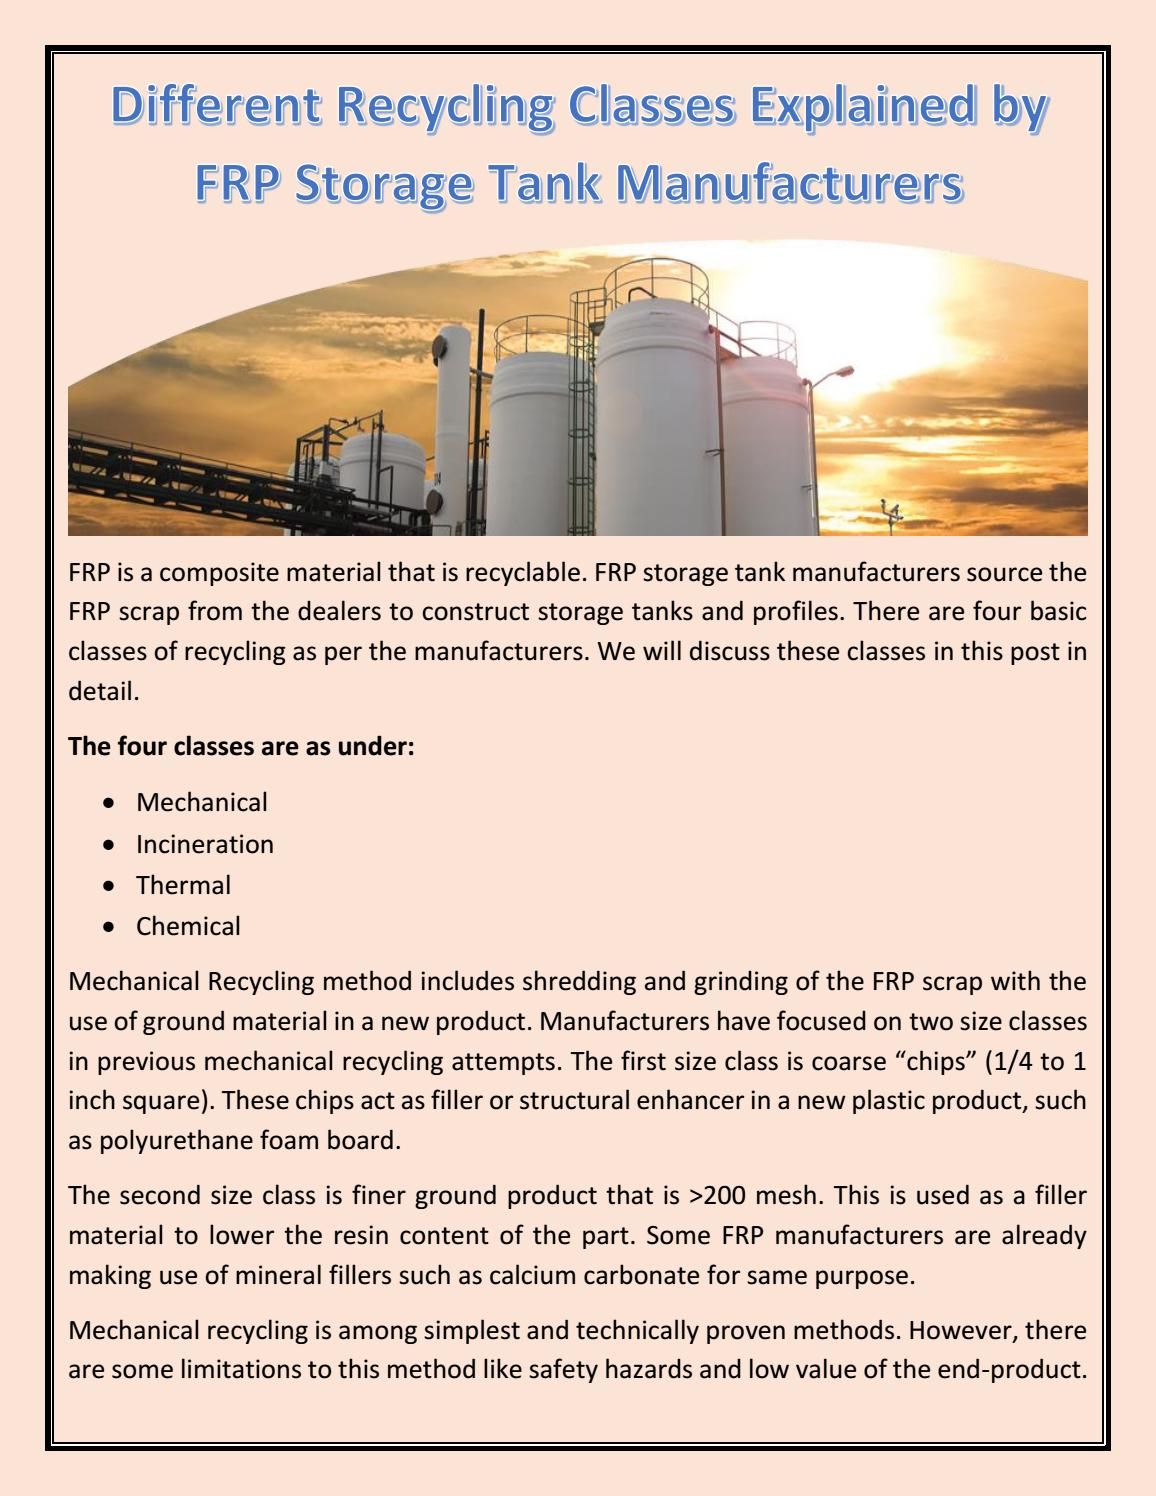 Different Recycling Classes Explained by FRP Storage Tank